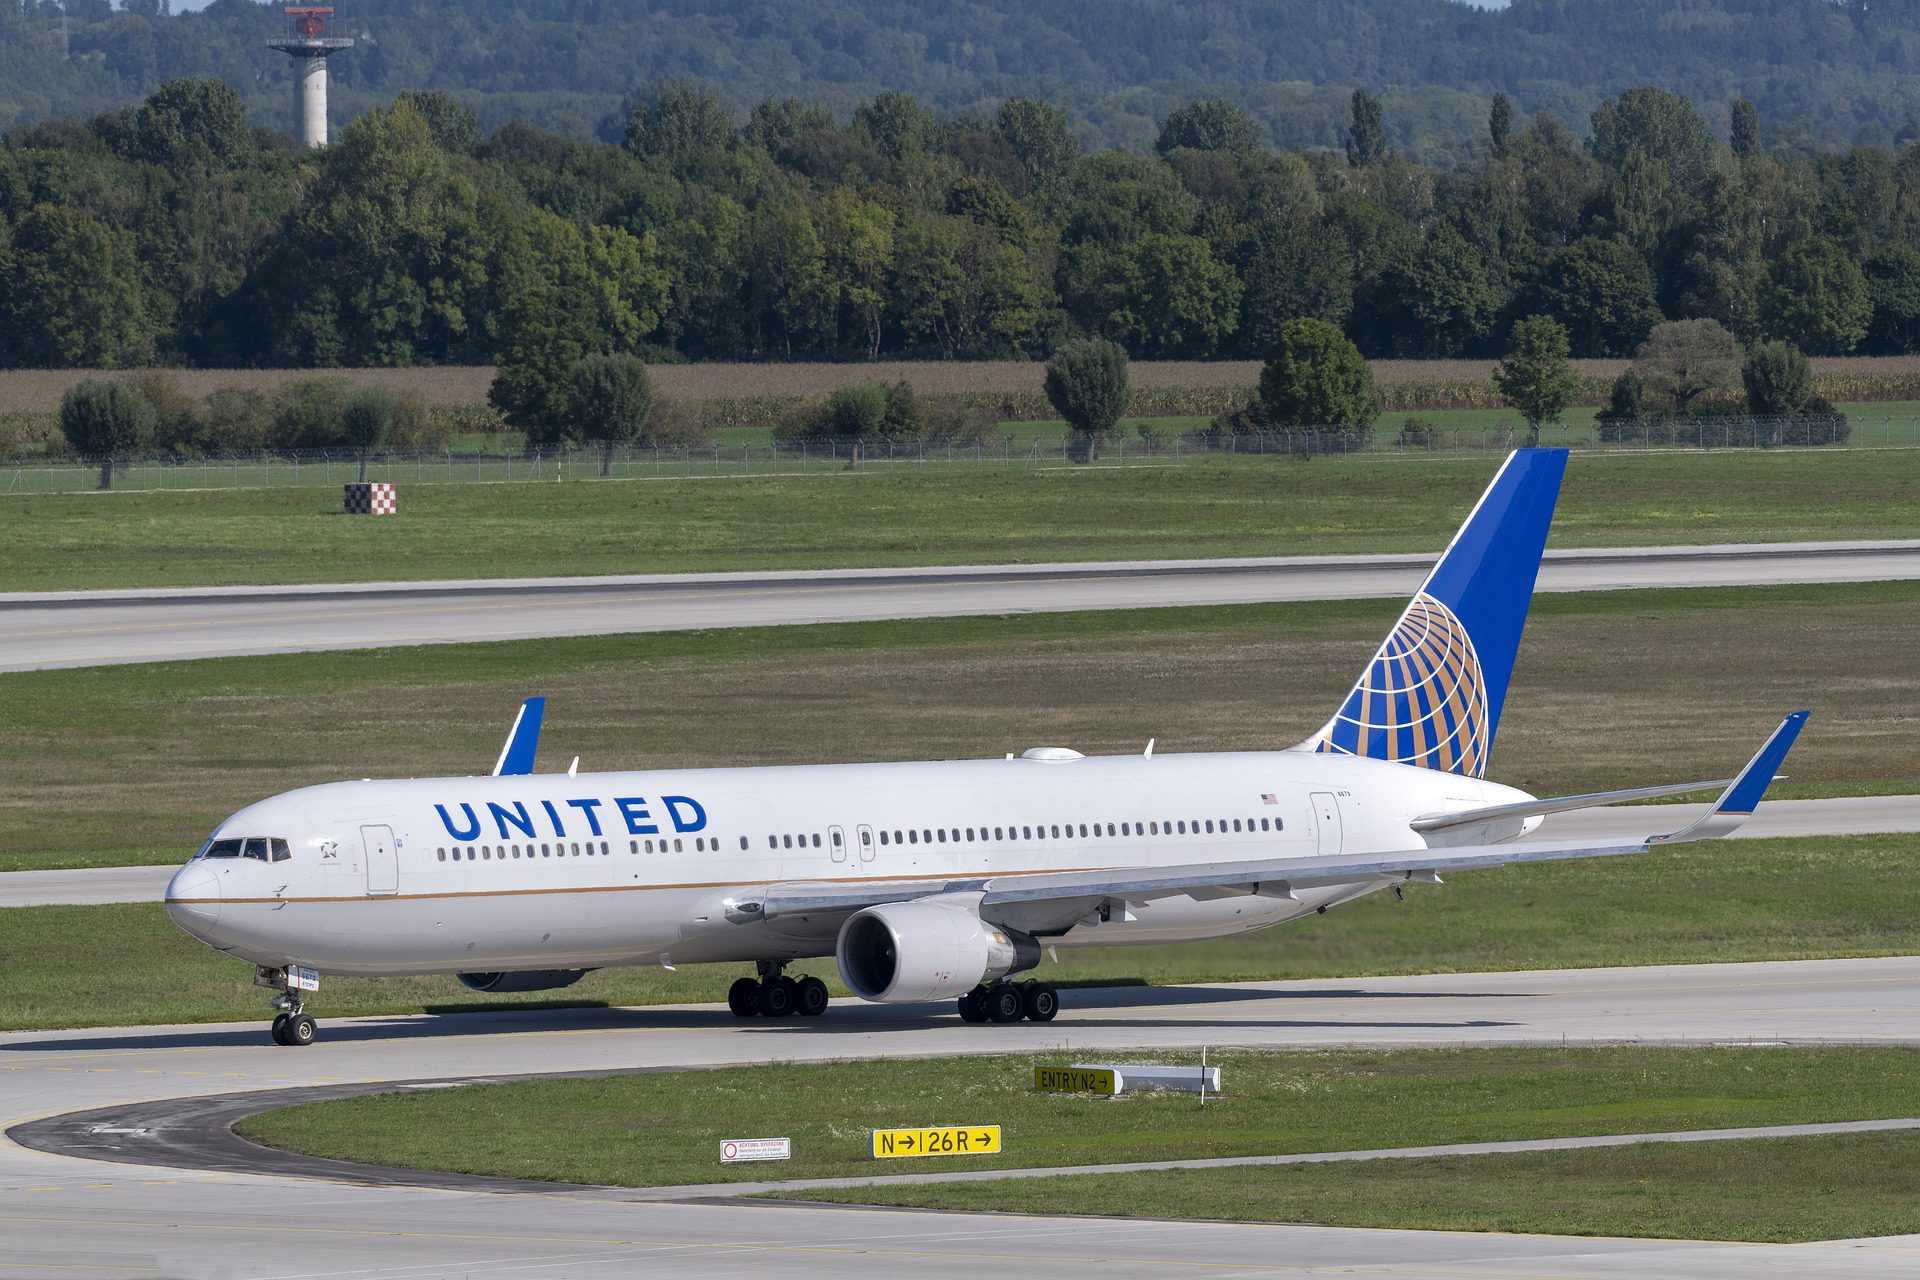 united-airlines-5249634_1920